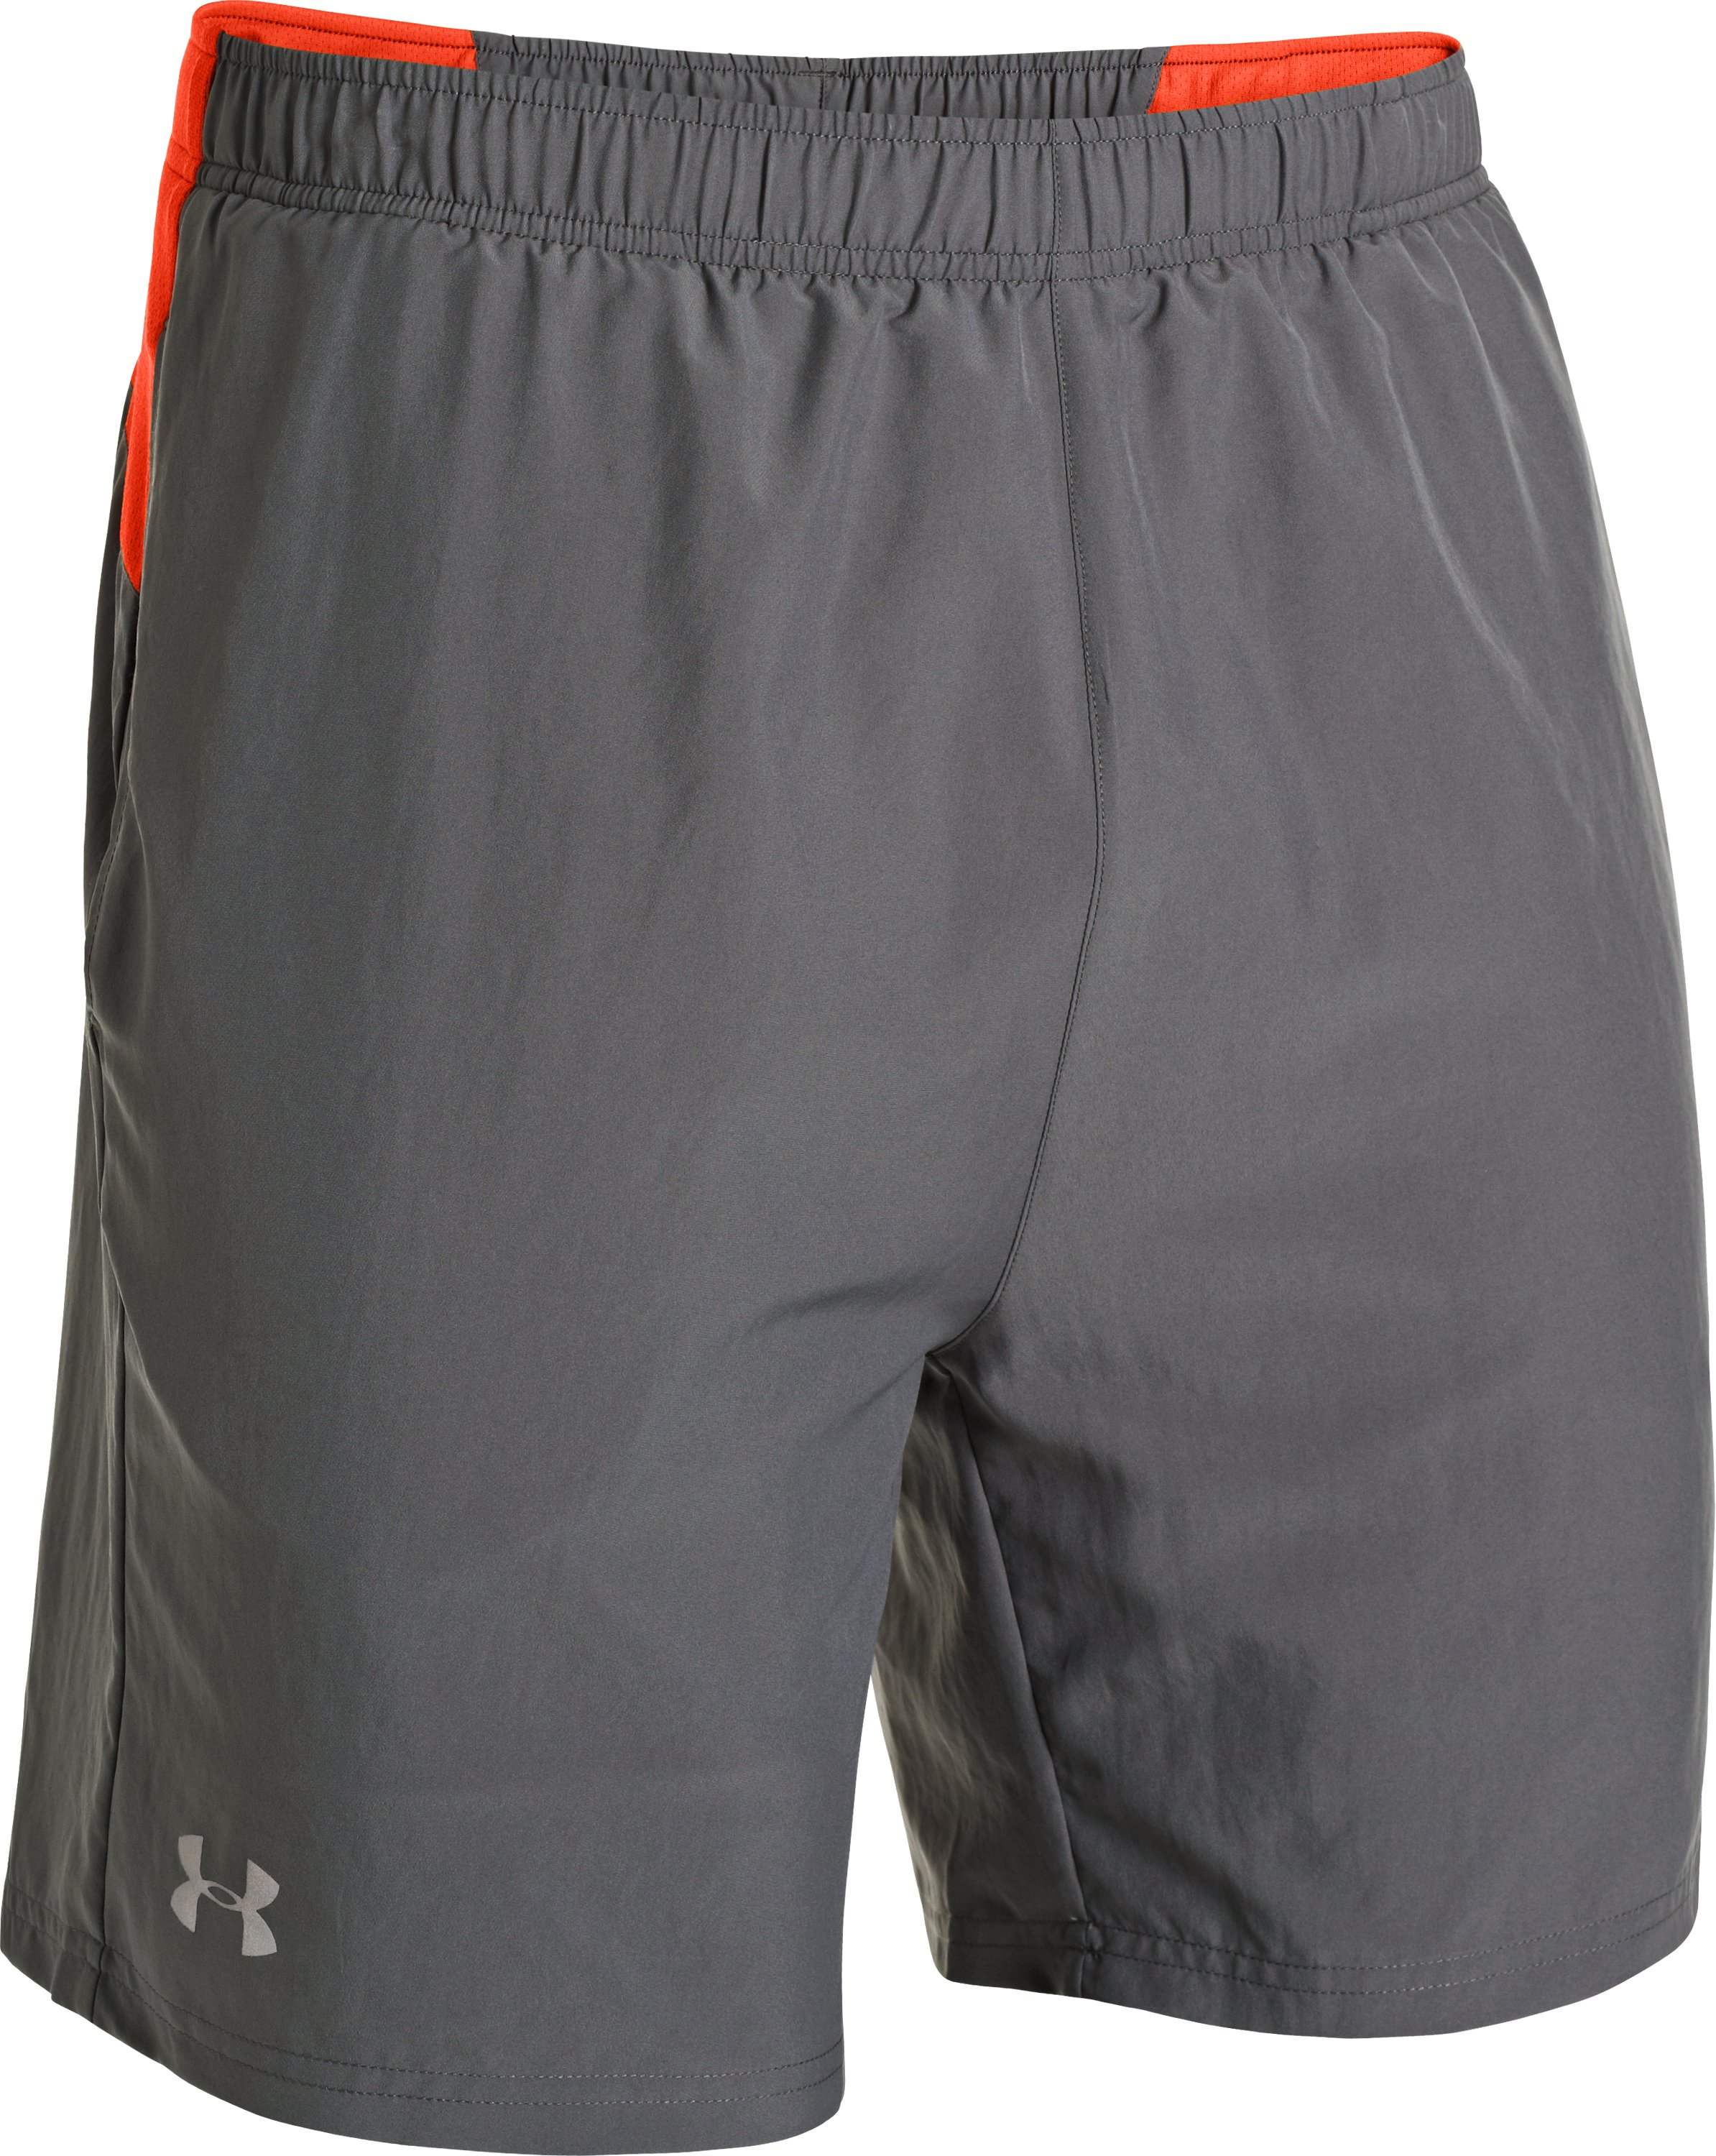 Men's UA Sixth Man 2-in-1 Shorts, Graphite, undefined